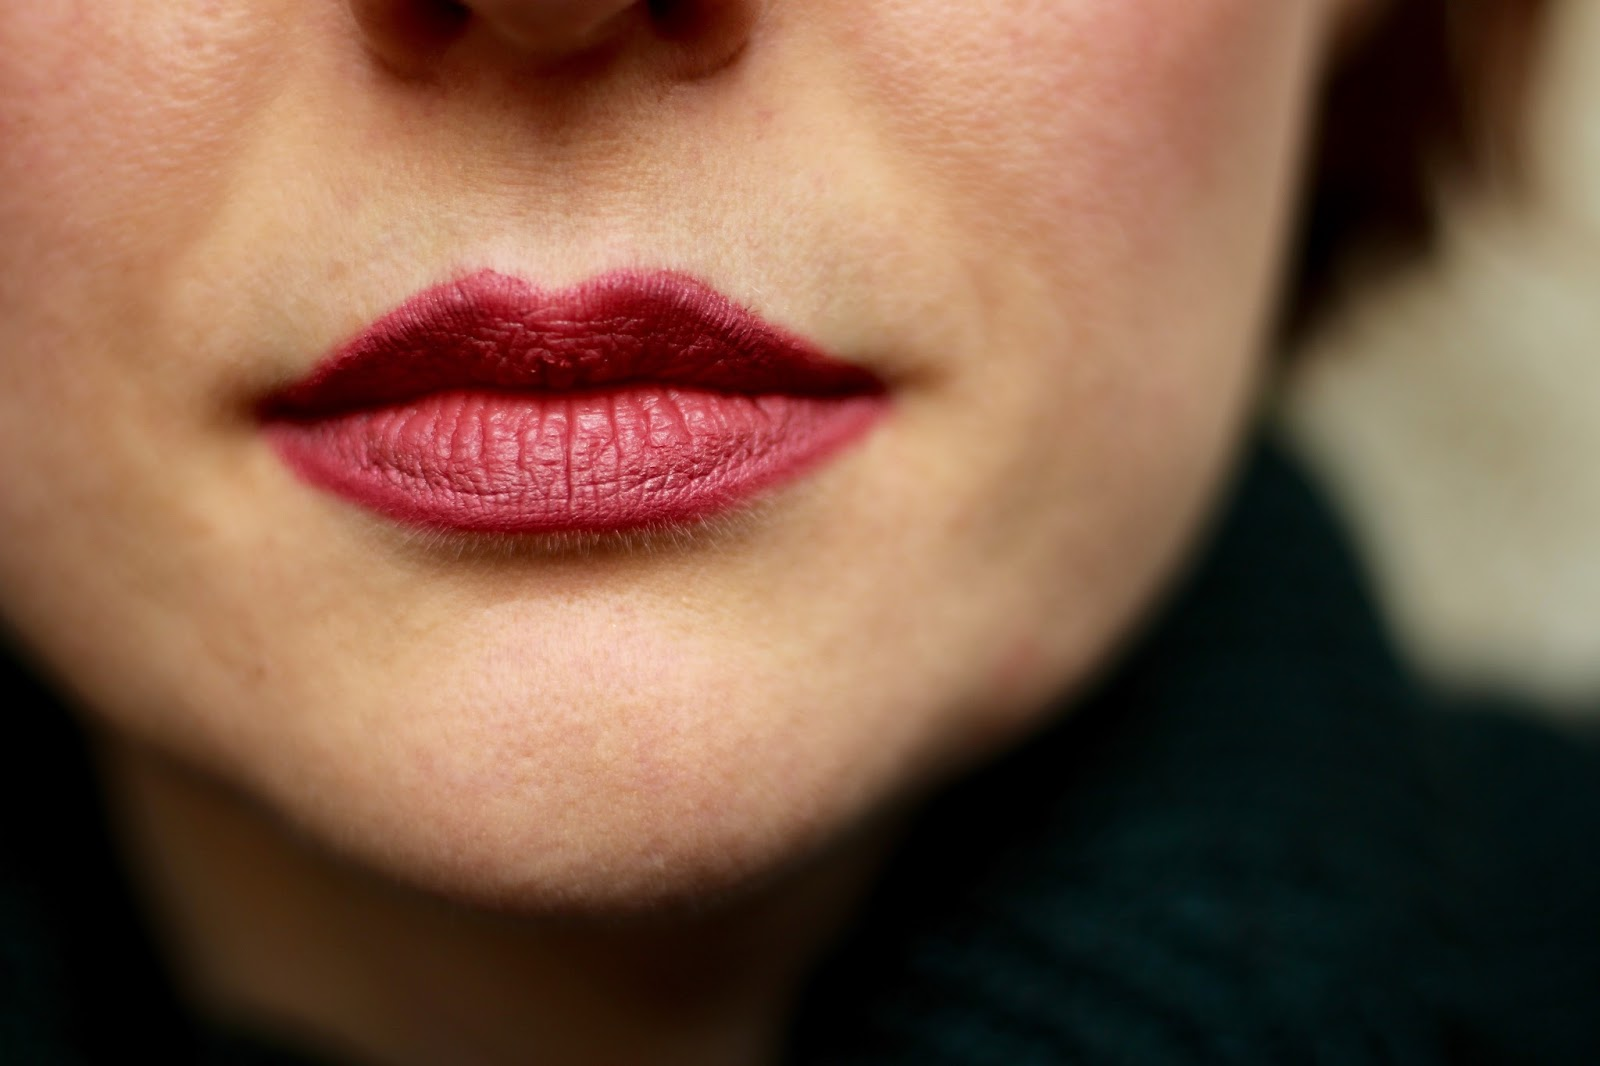 Does overlining your lips REALLY work? Beauty over 40.